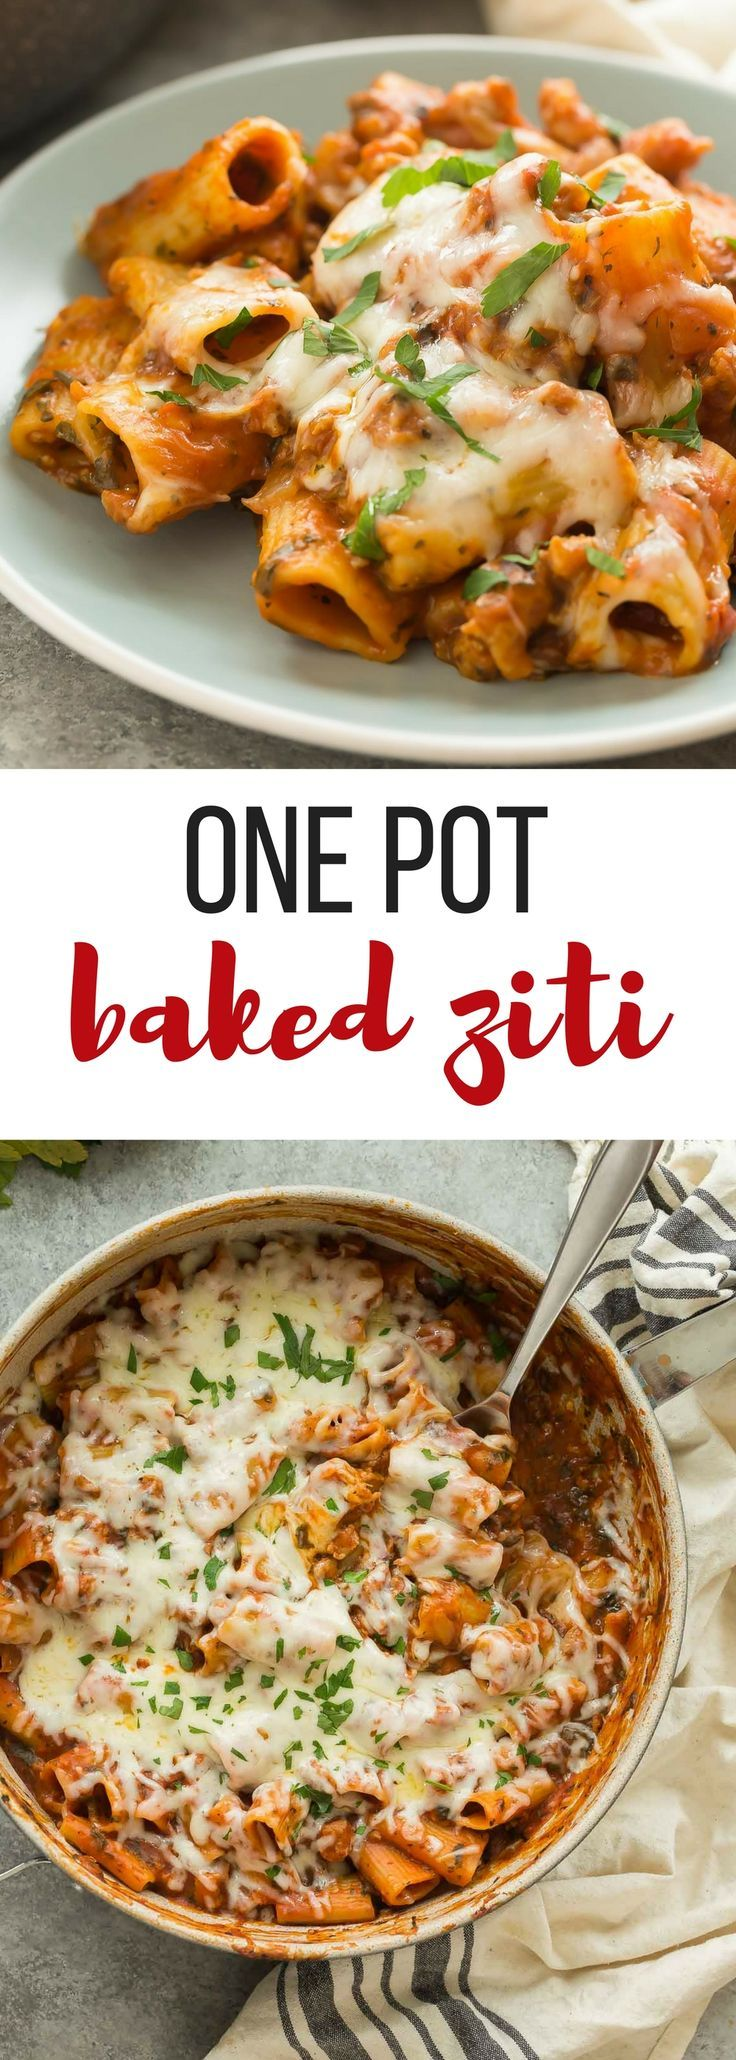 This One Pot Baked Ziti with Italian Sausage is full of flavor but easy on the dishes! It's made with turkey Italian sausage, spinach, tomato sauce and loaded with cheese -- the perfect weeknight dinner! Includes step by step recipe video.   easy recipe   easy dinner   healthy recipe   weeknight meal #onepot #onepan #onepotpasta